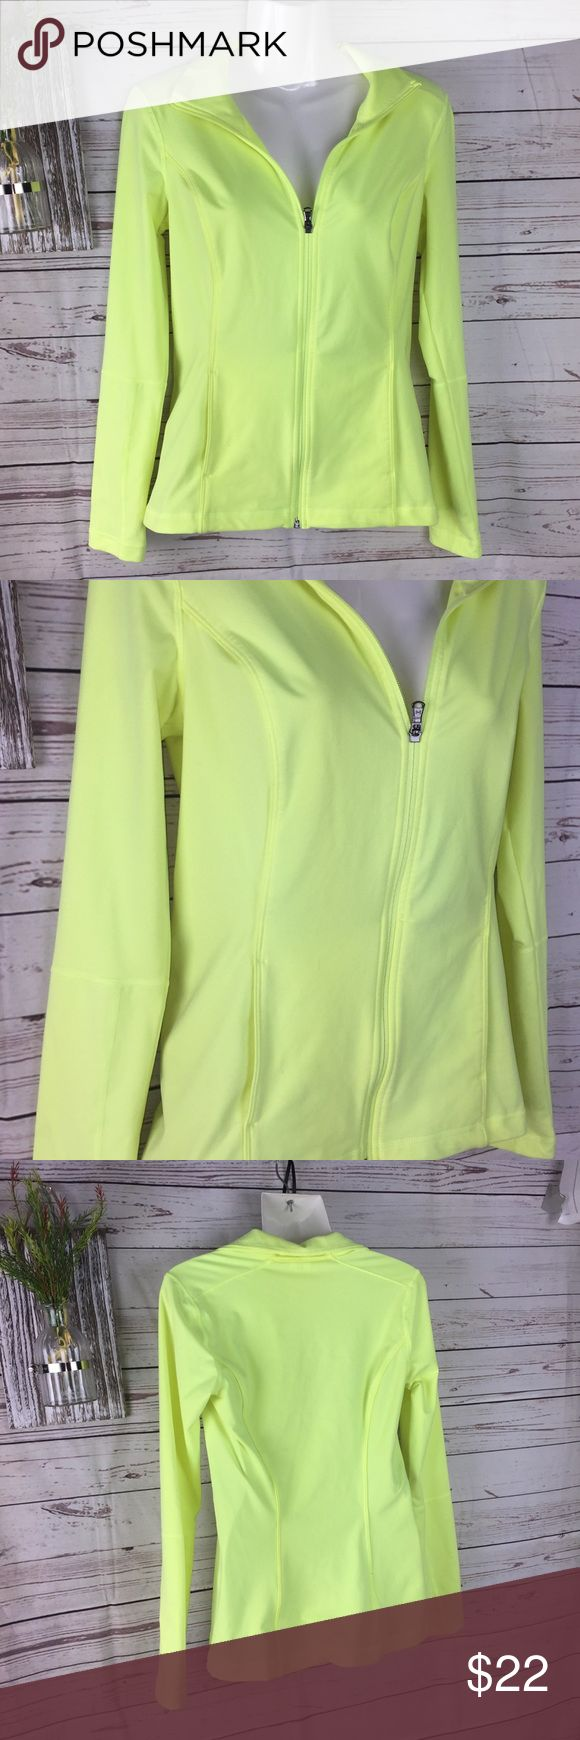 Under armour Bright yellow fit it zip up jacket S Under armour zip up jacket Bright yellow Front pockets Good condition Size small Under armour Bright yellow zip up jacket Under Armour Jackets & Coats